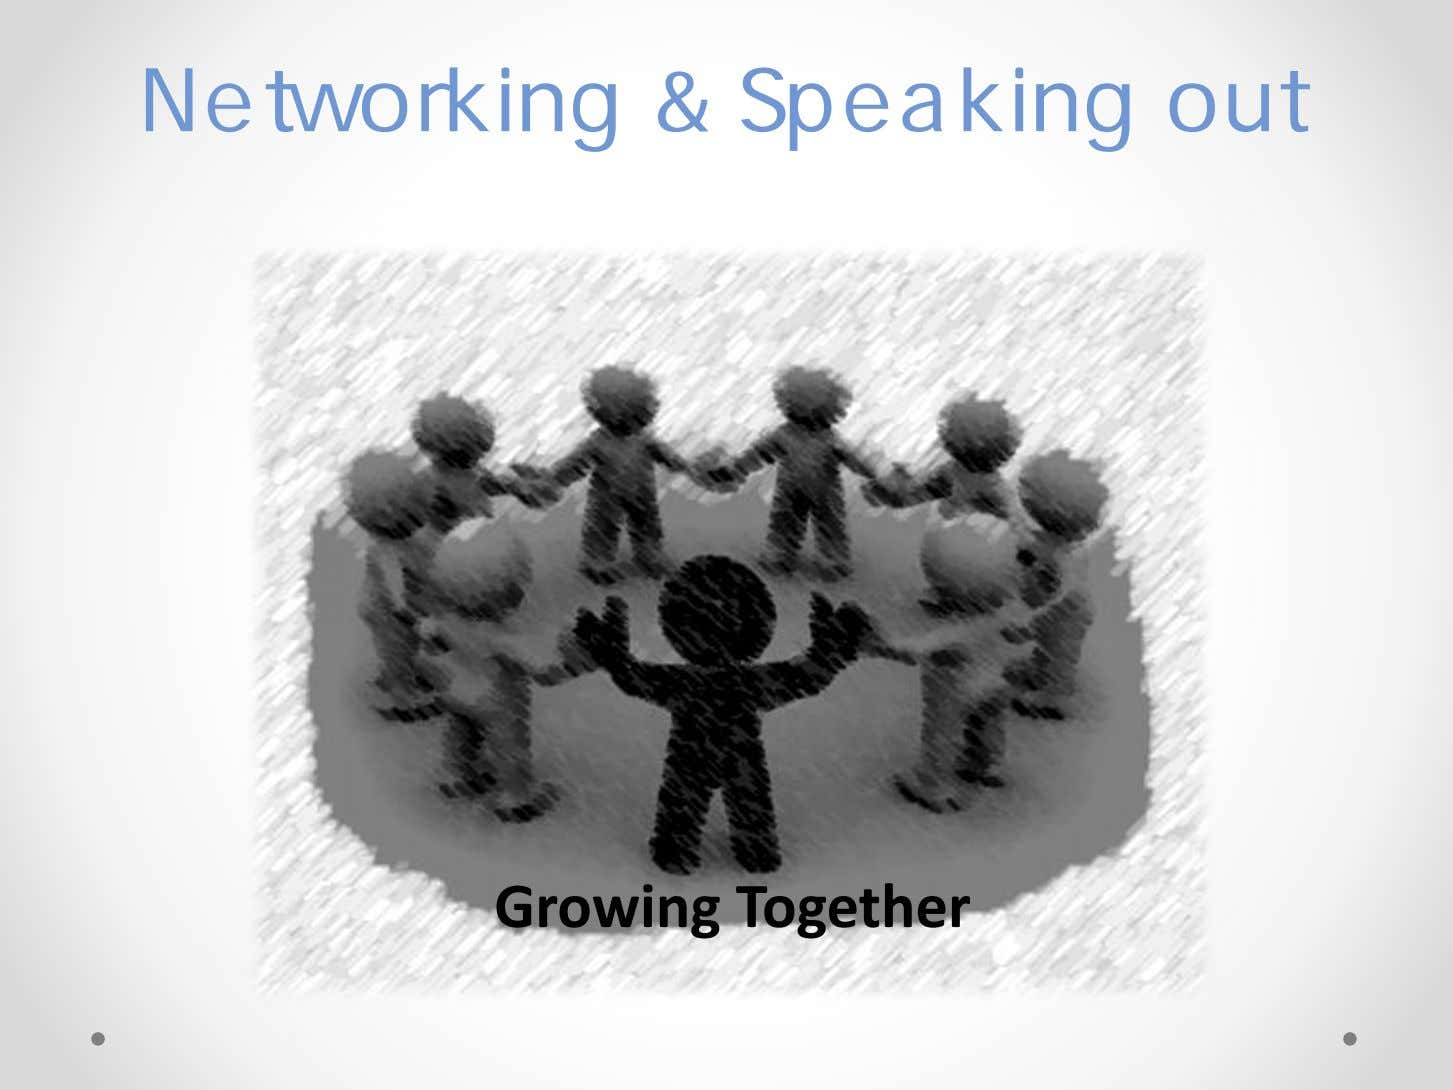 Networking & Speaking out Growing Together